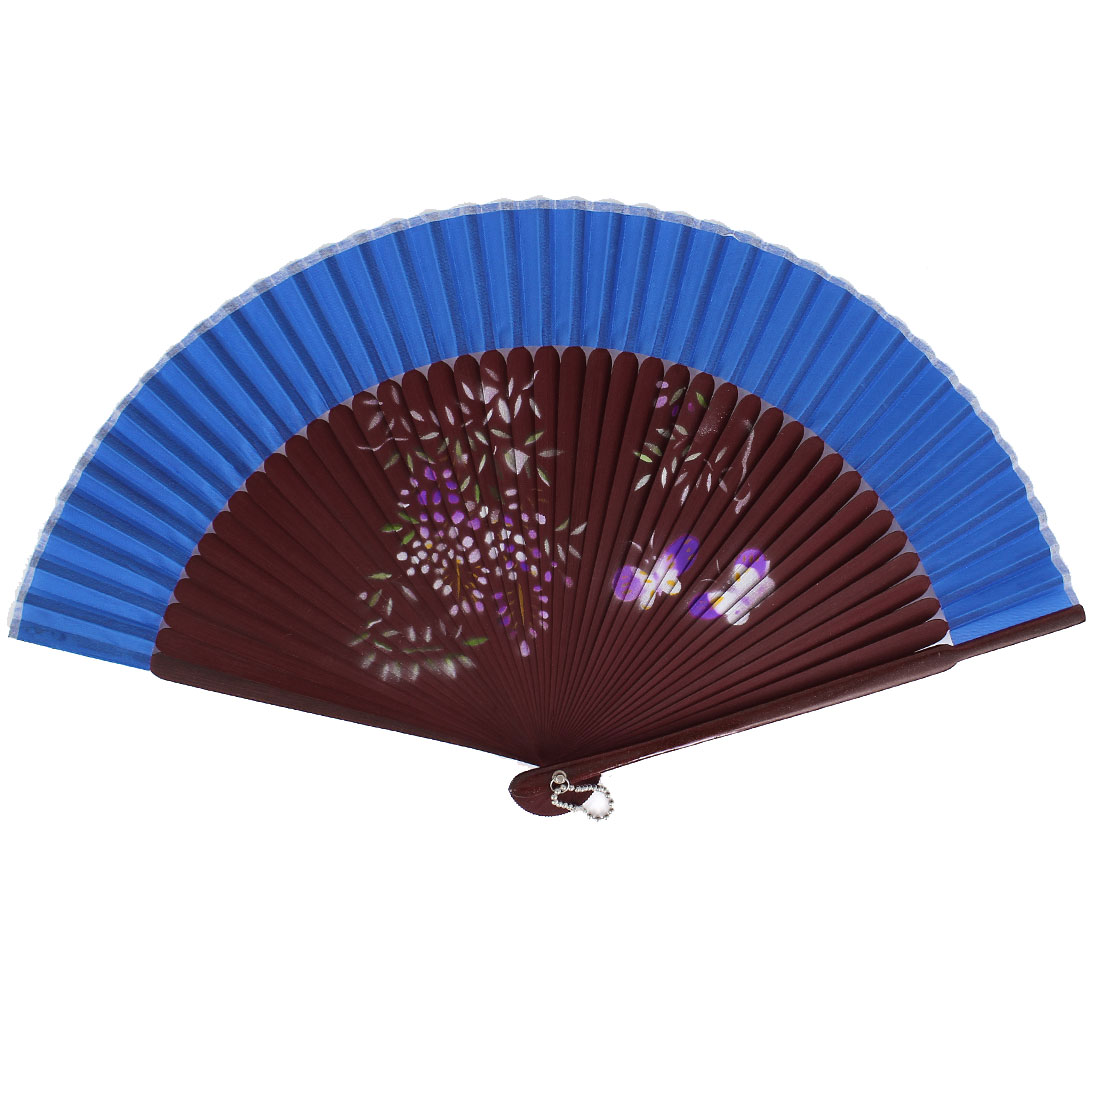 Chinese Style Blooming Flower Print Wood Handheld Folding Hand Fan Blue Burgundy